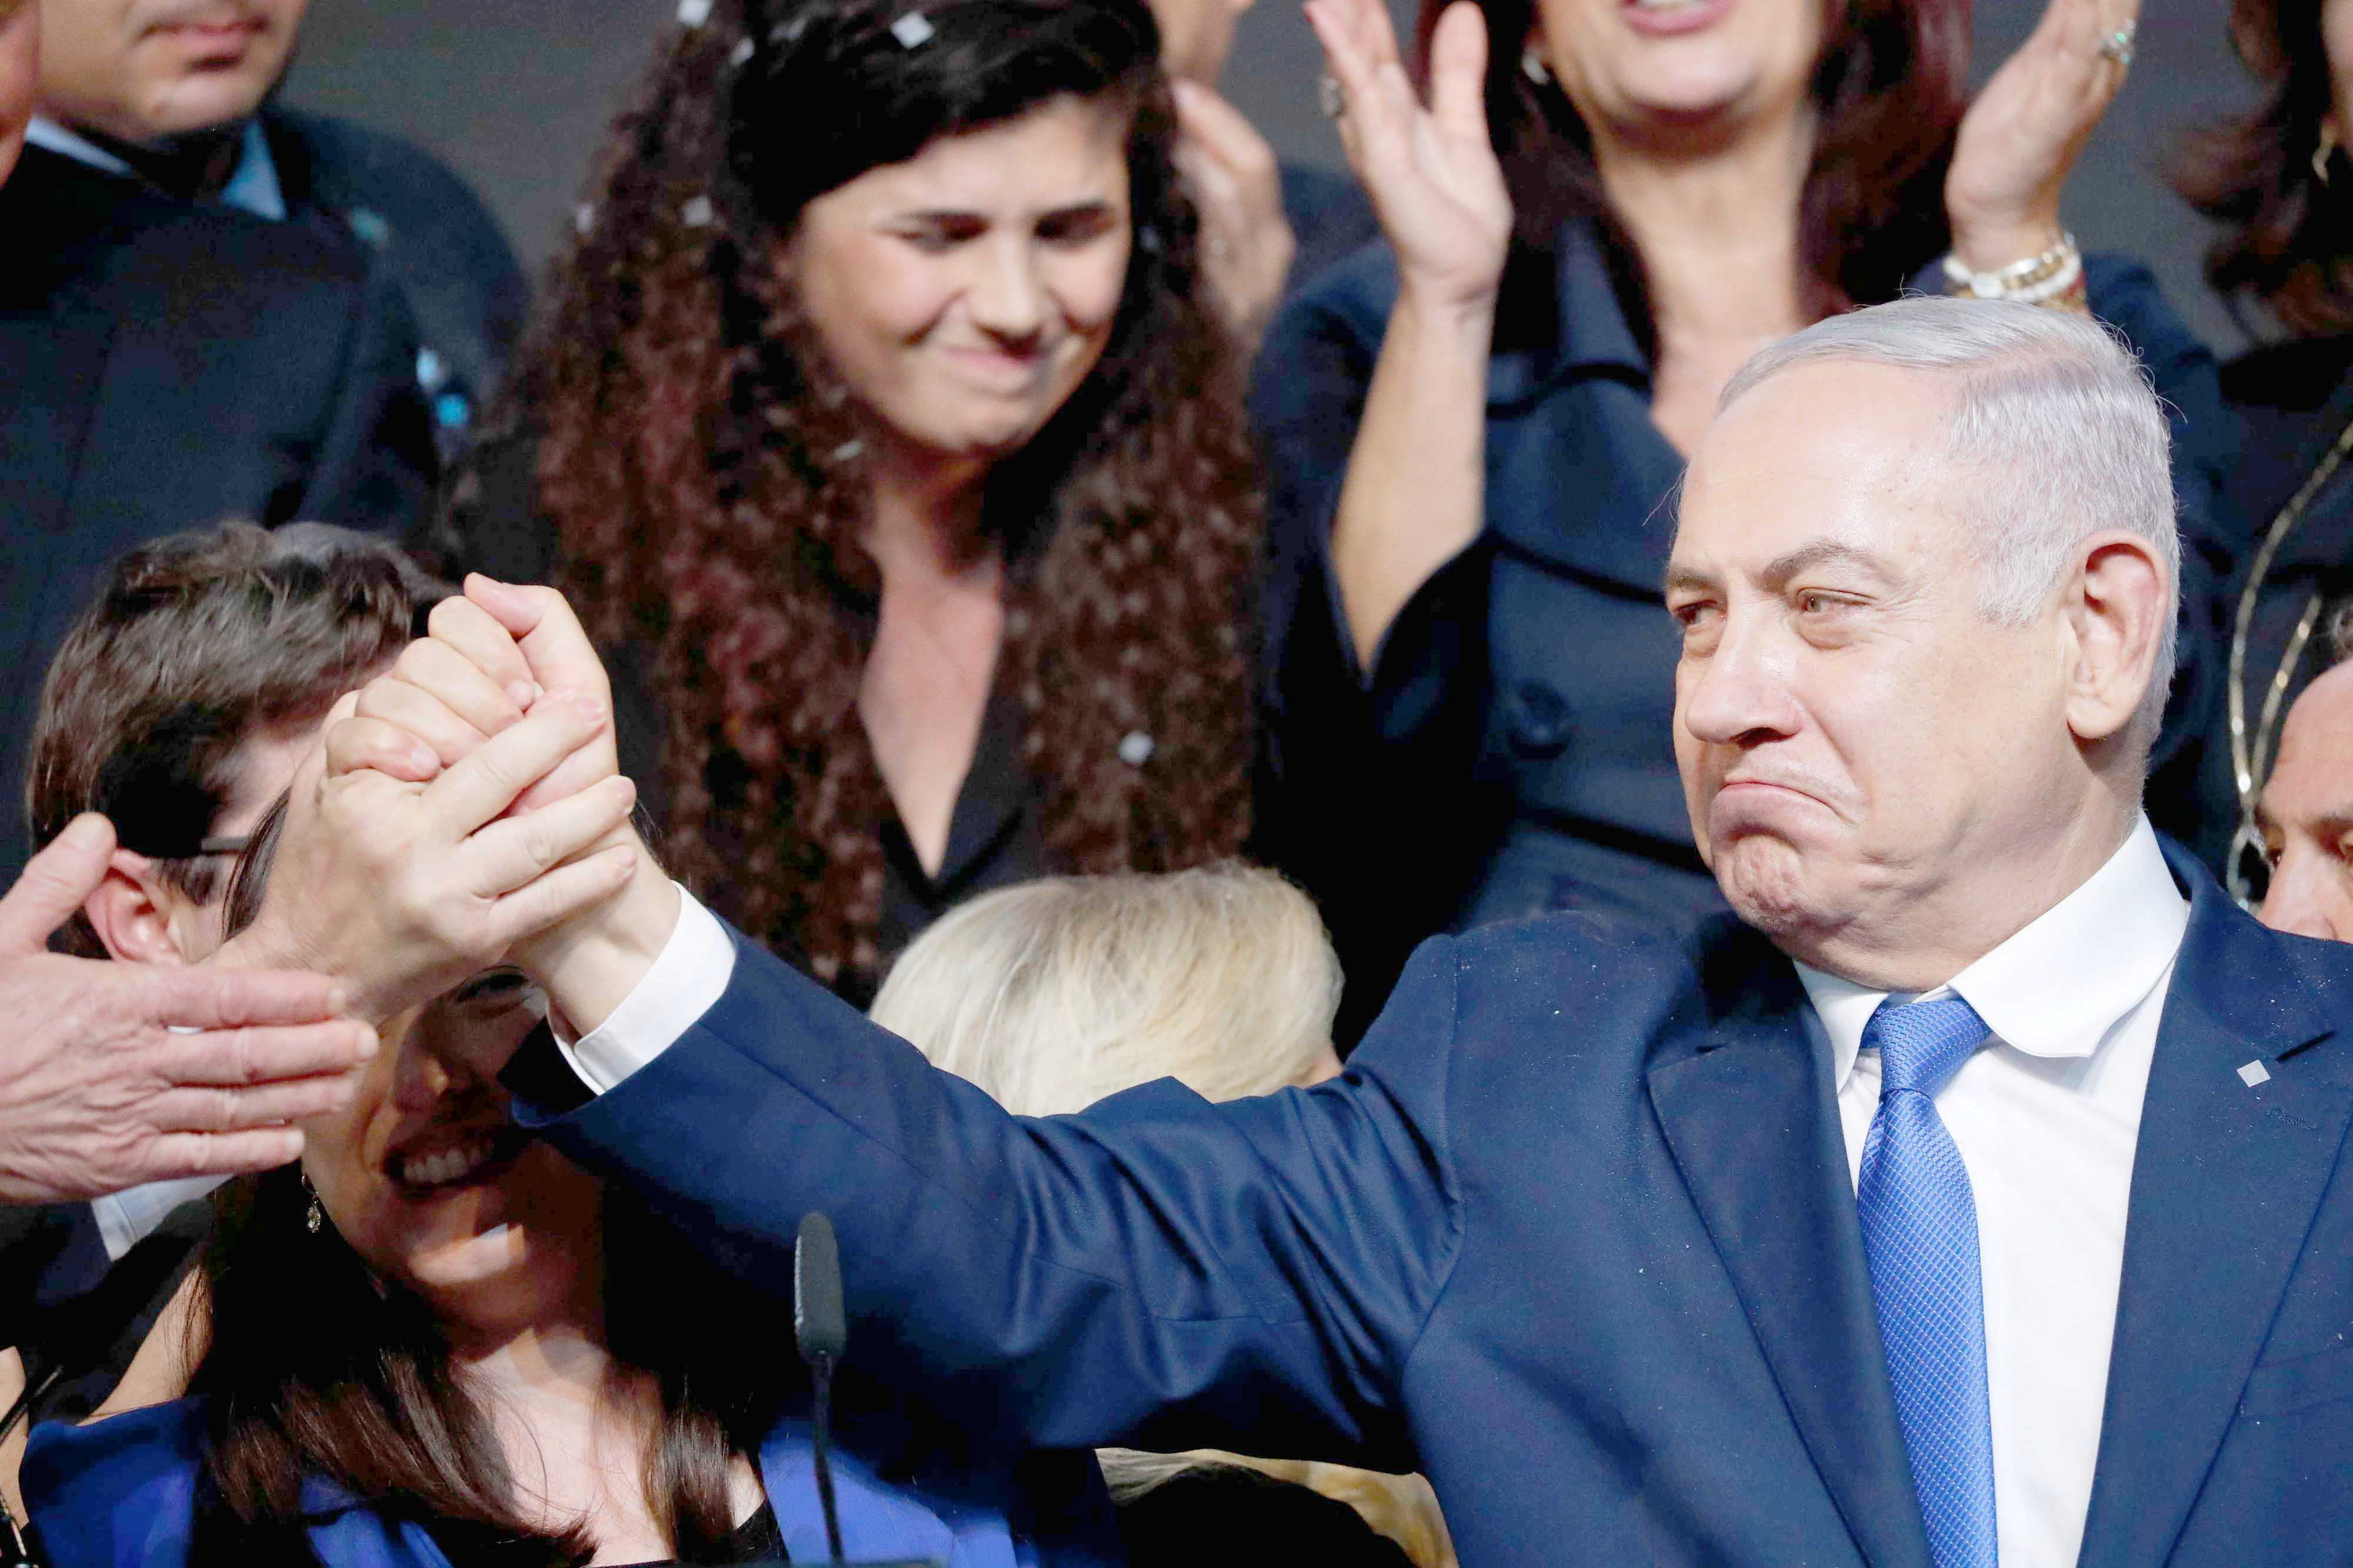 Israeli Prime Minister Binyamin Netanyahu shakes hands with a supporter at Likud party headquarters in Tel Aviv, April 10. (AFP)